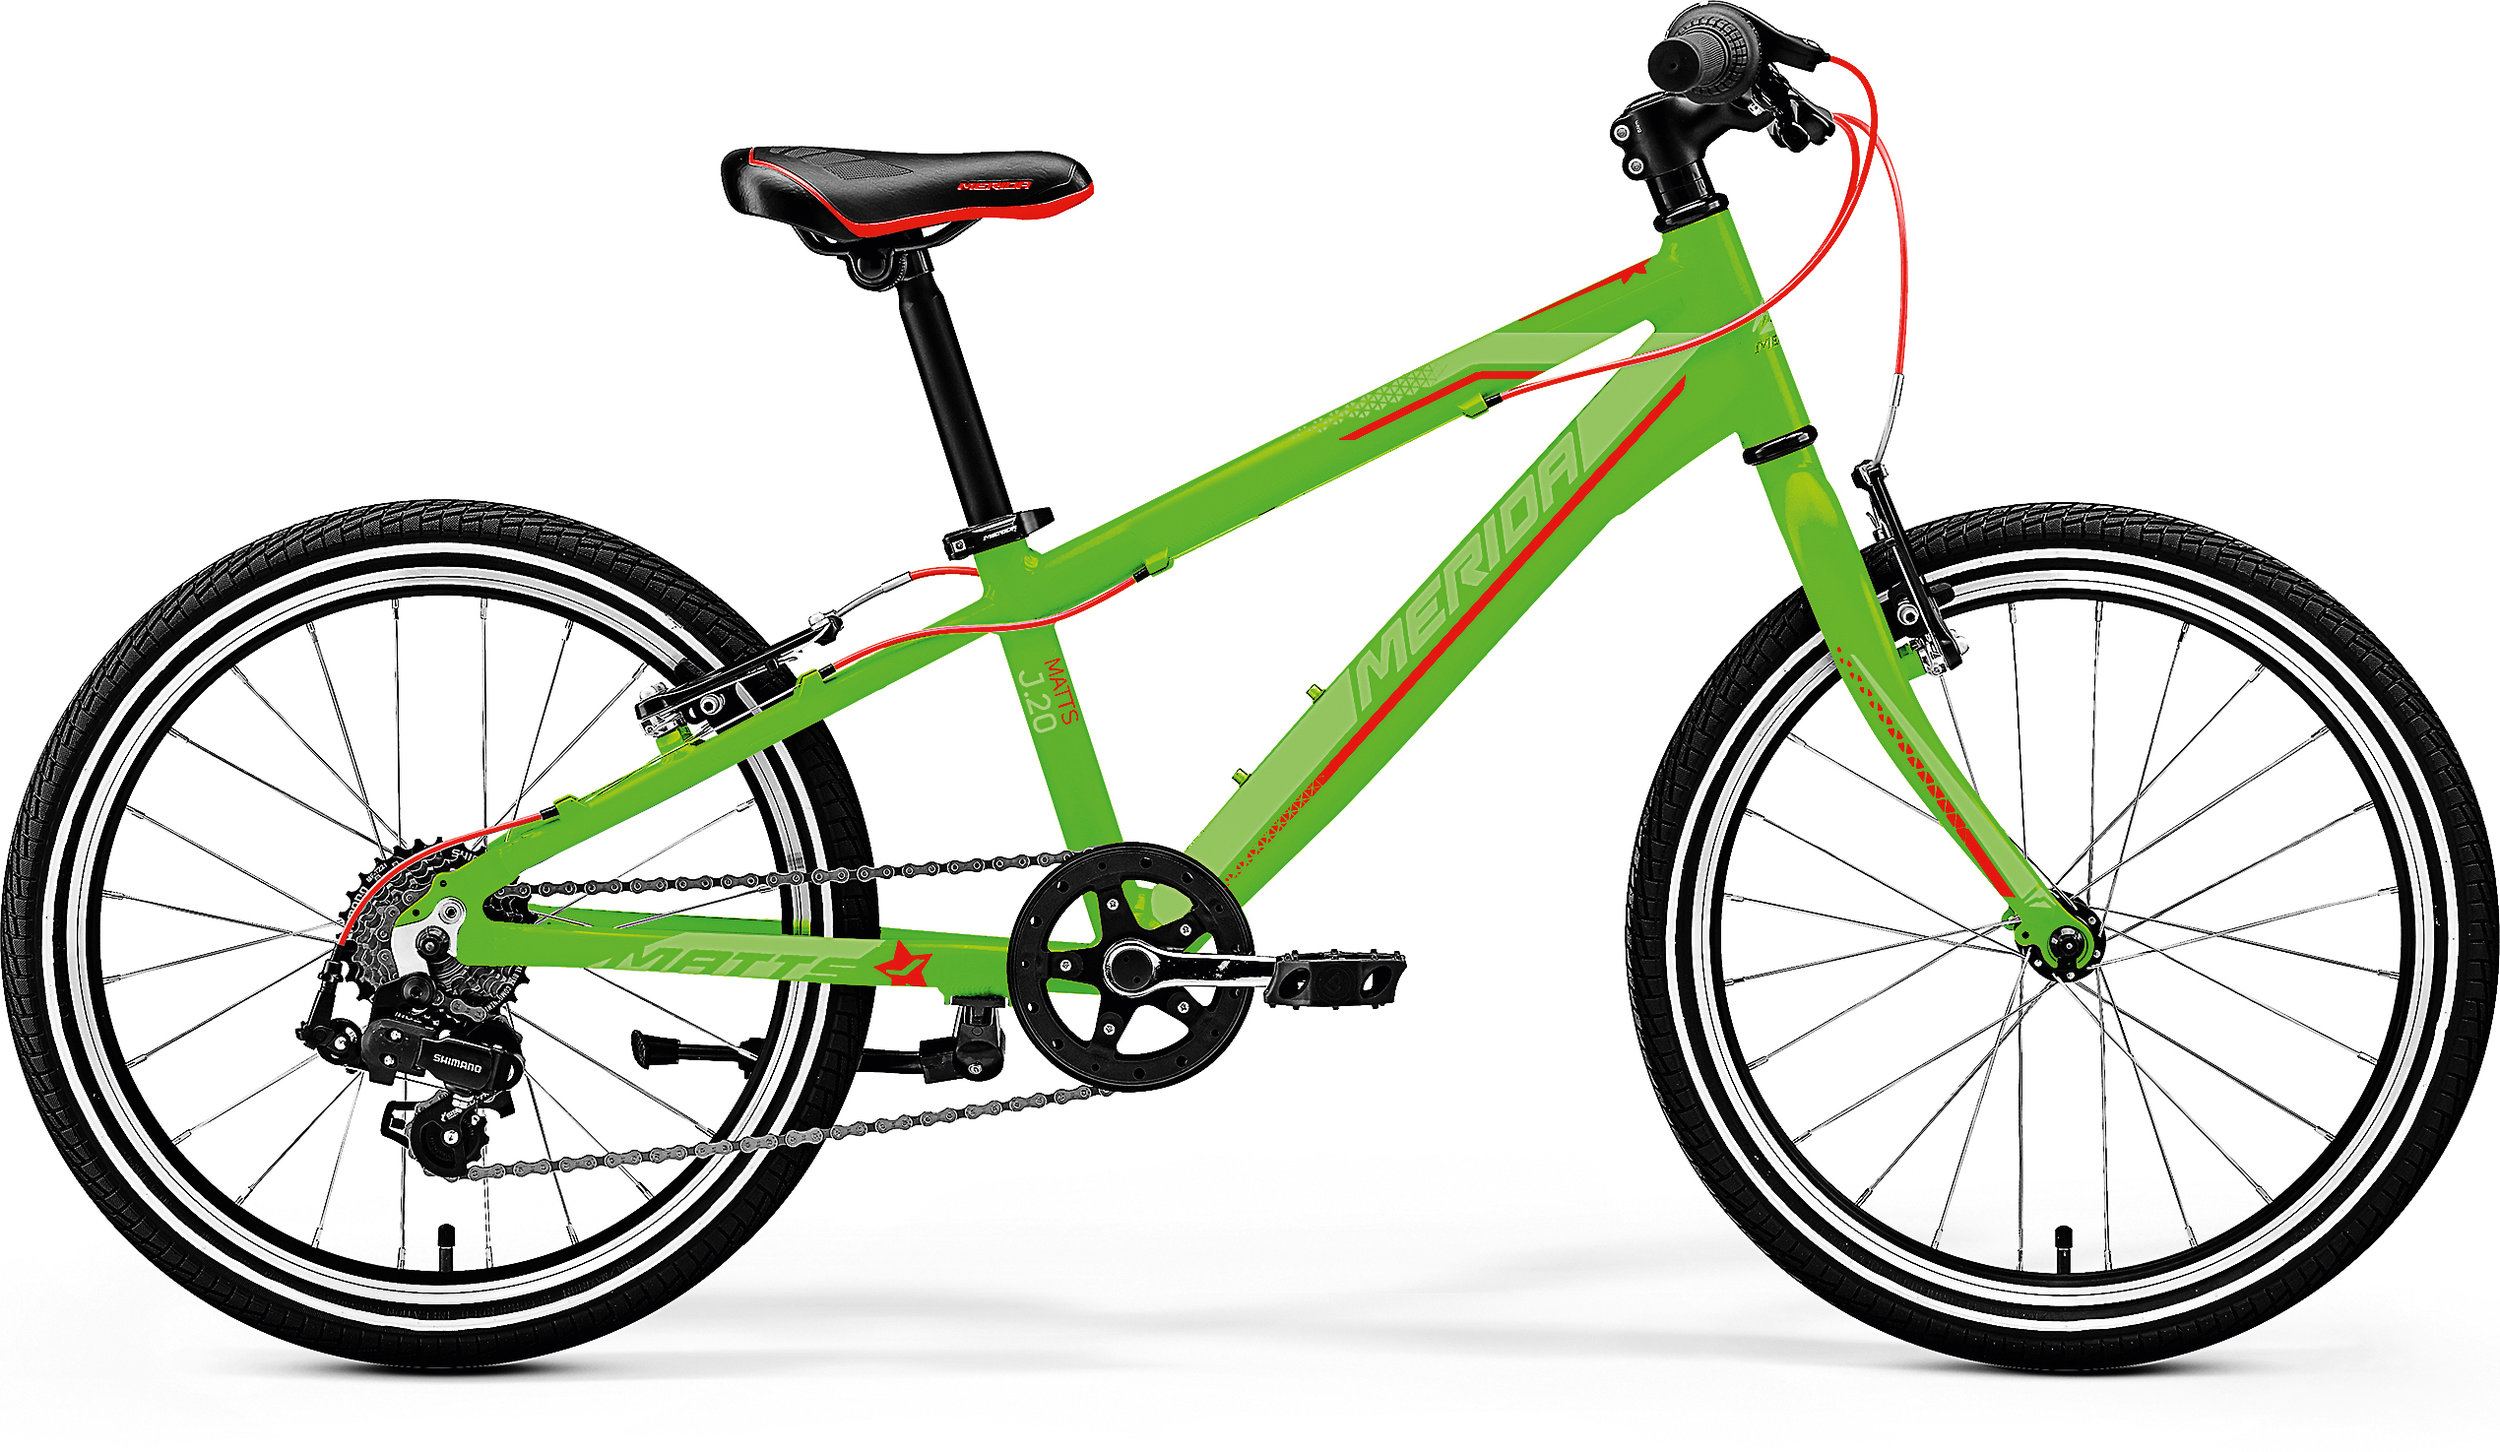 Matts.J20 Race   SGD $382 | Specifications:   Here